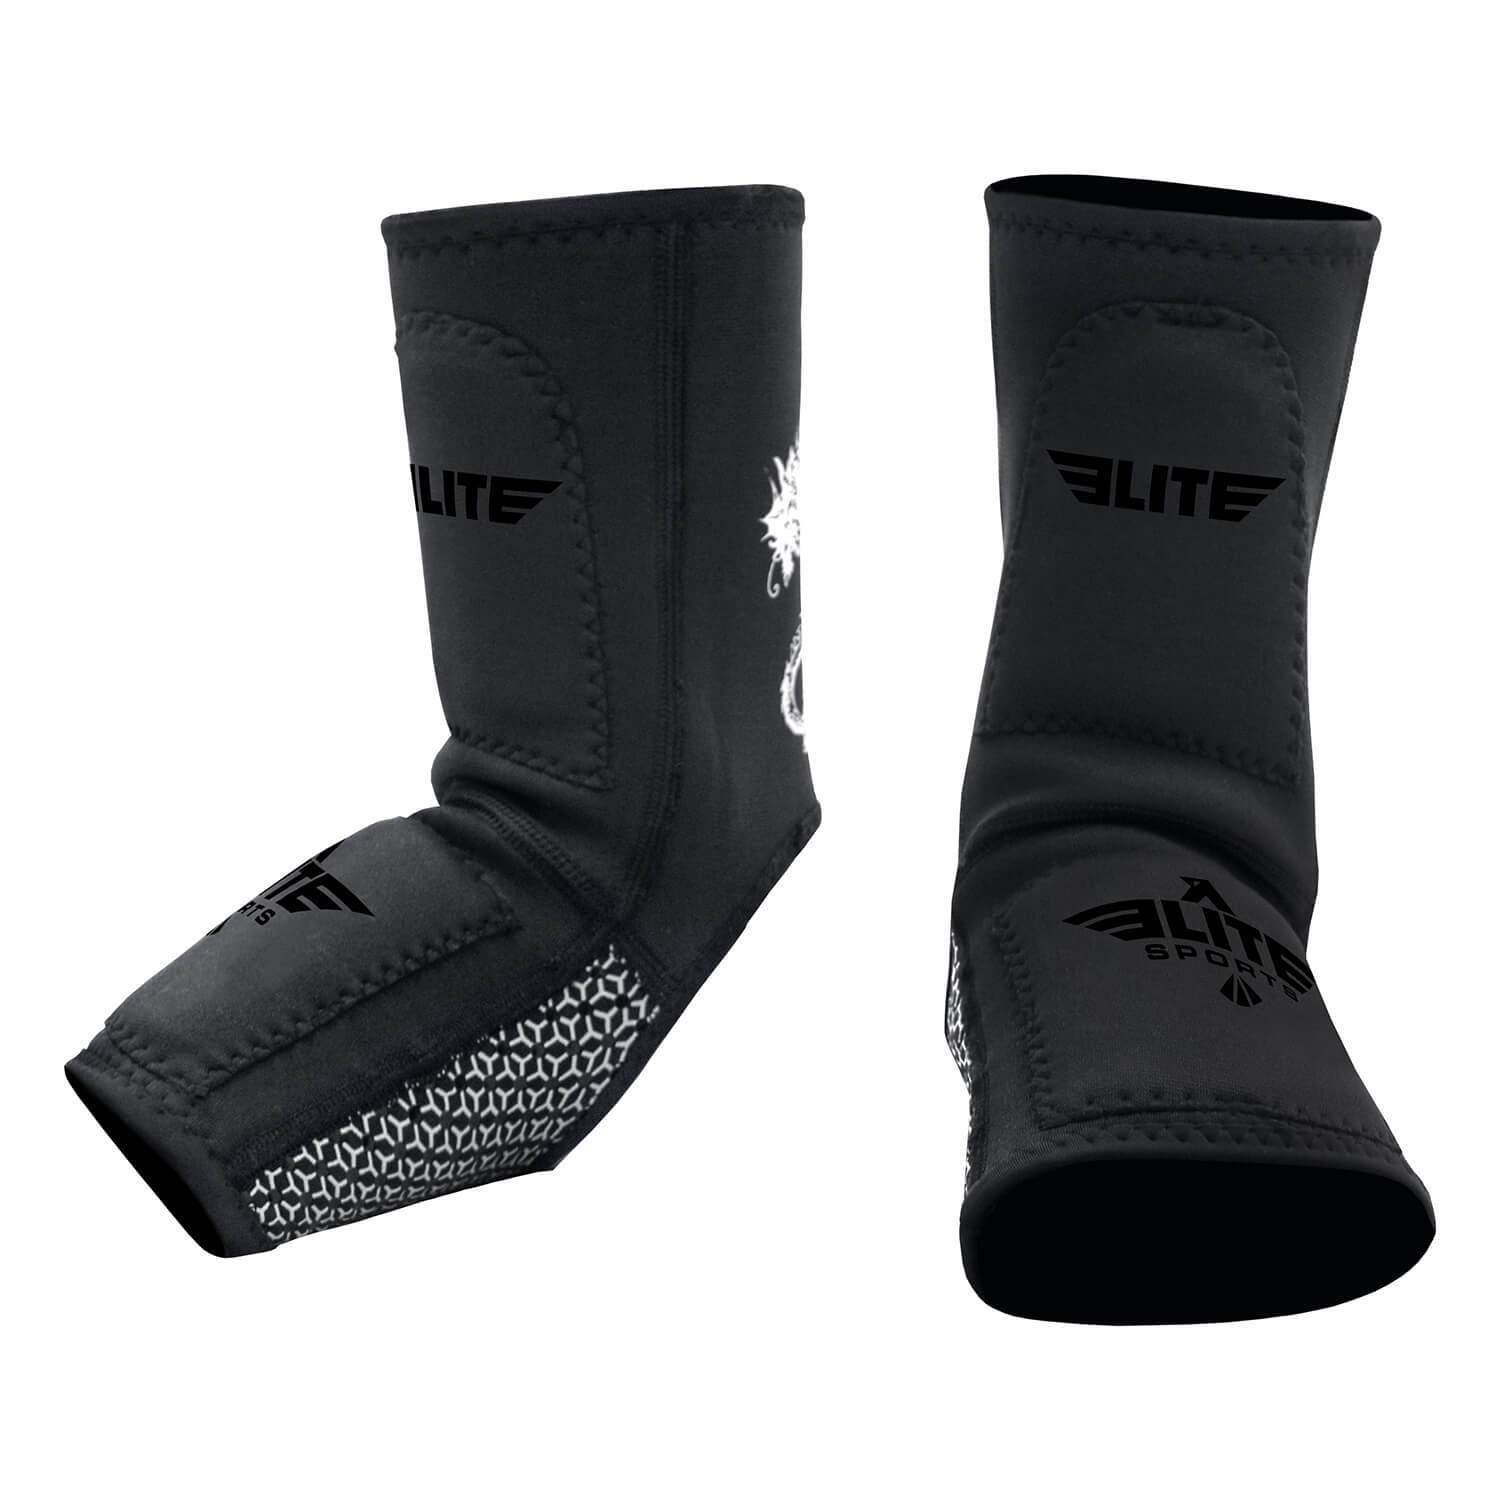 Load image into Gallery viewer, Elite Sports Black Training Ankle Guard